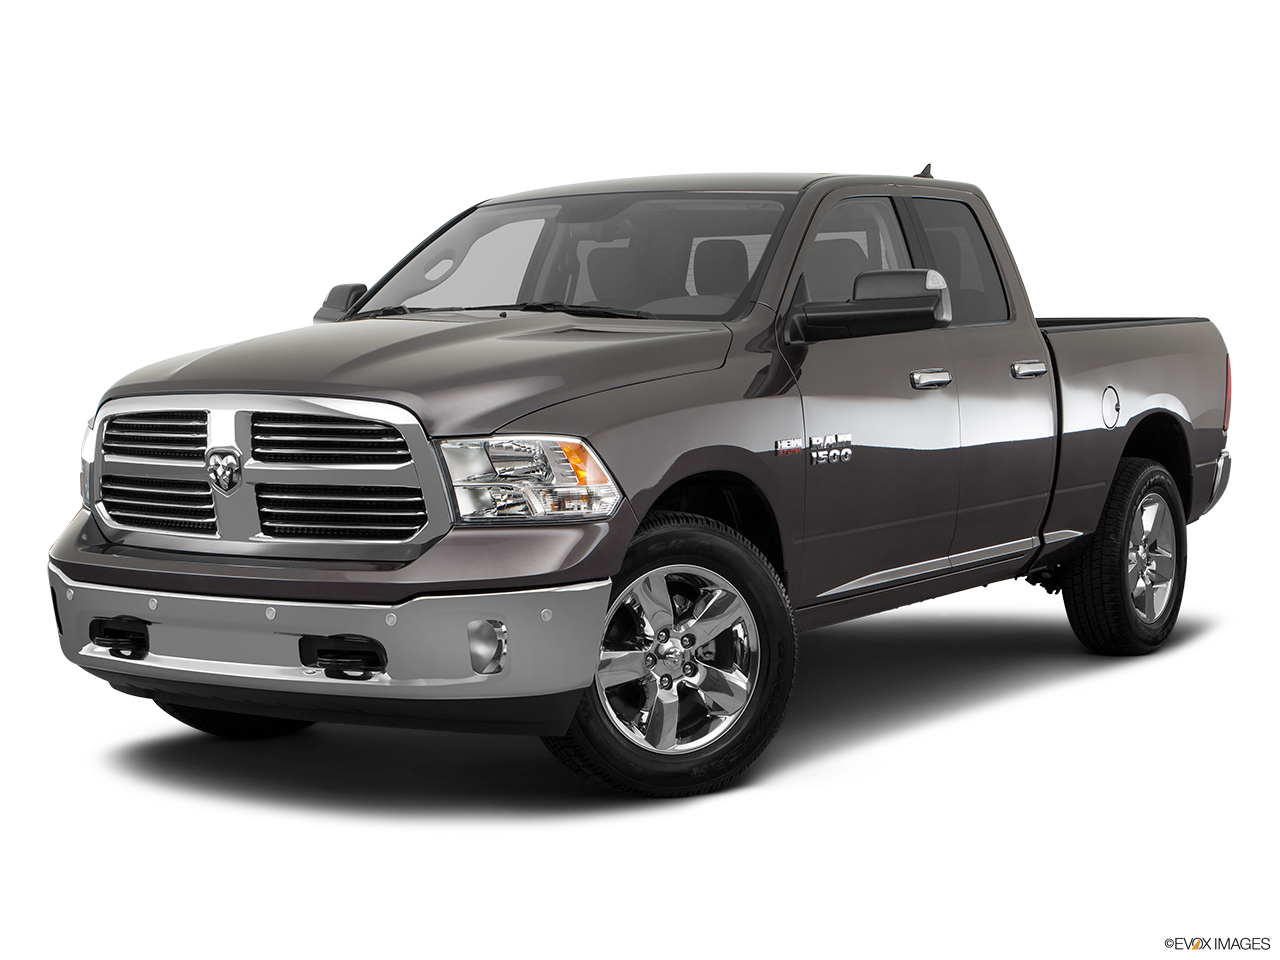 Test Drive A 2017 RAM 1500 at Landmark Chrysler Dodge Jeep RAM of ...